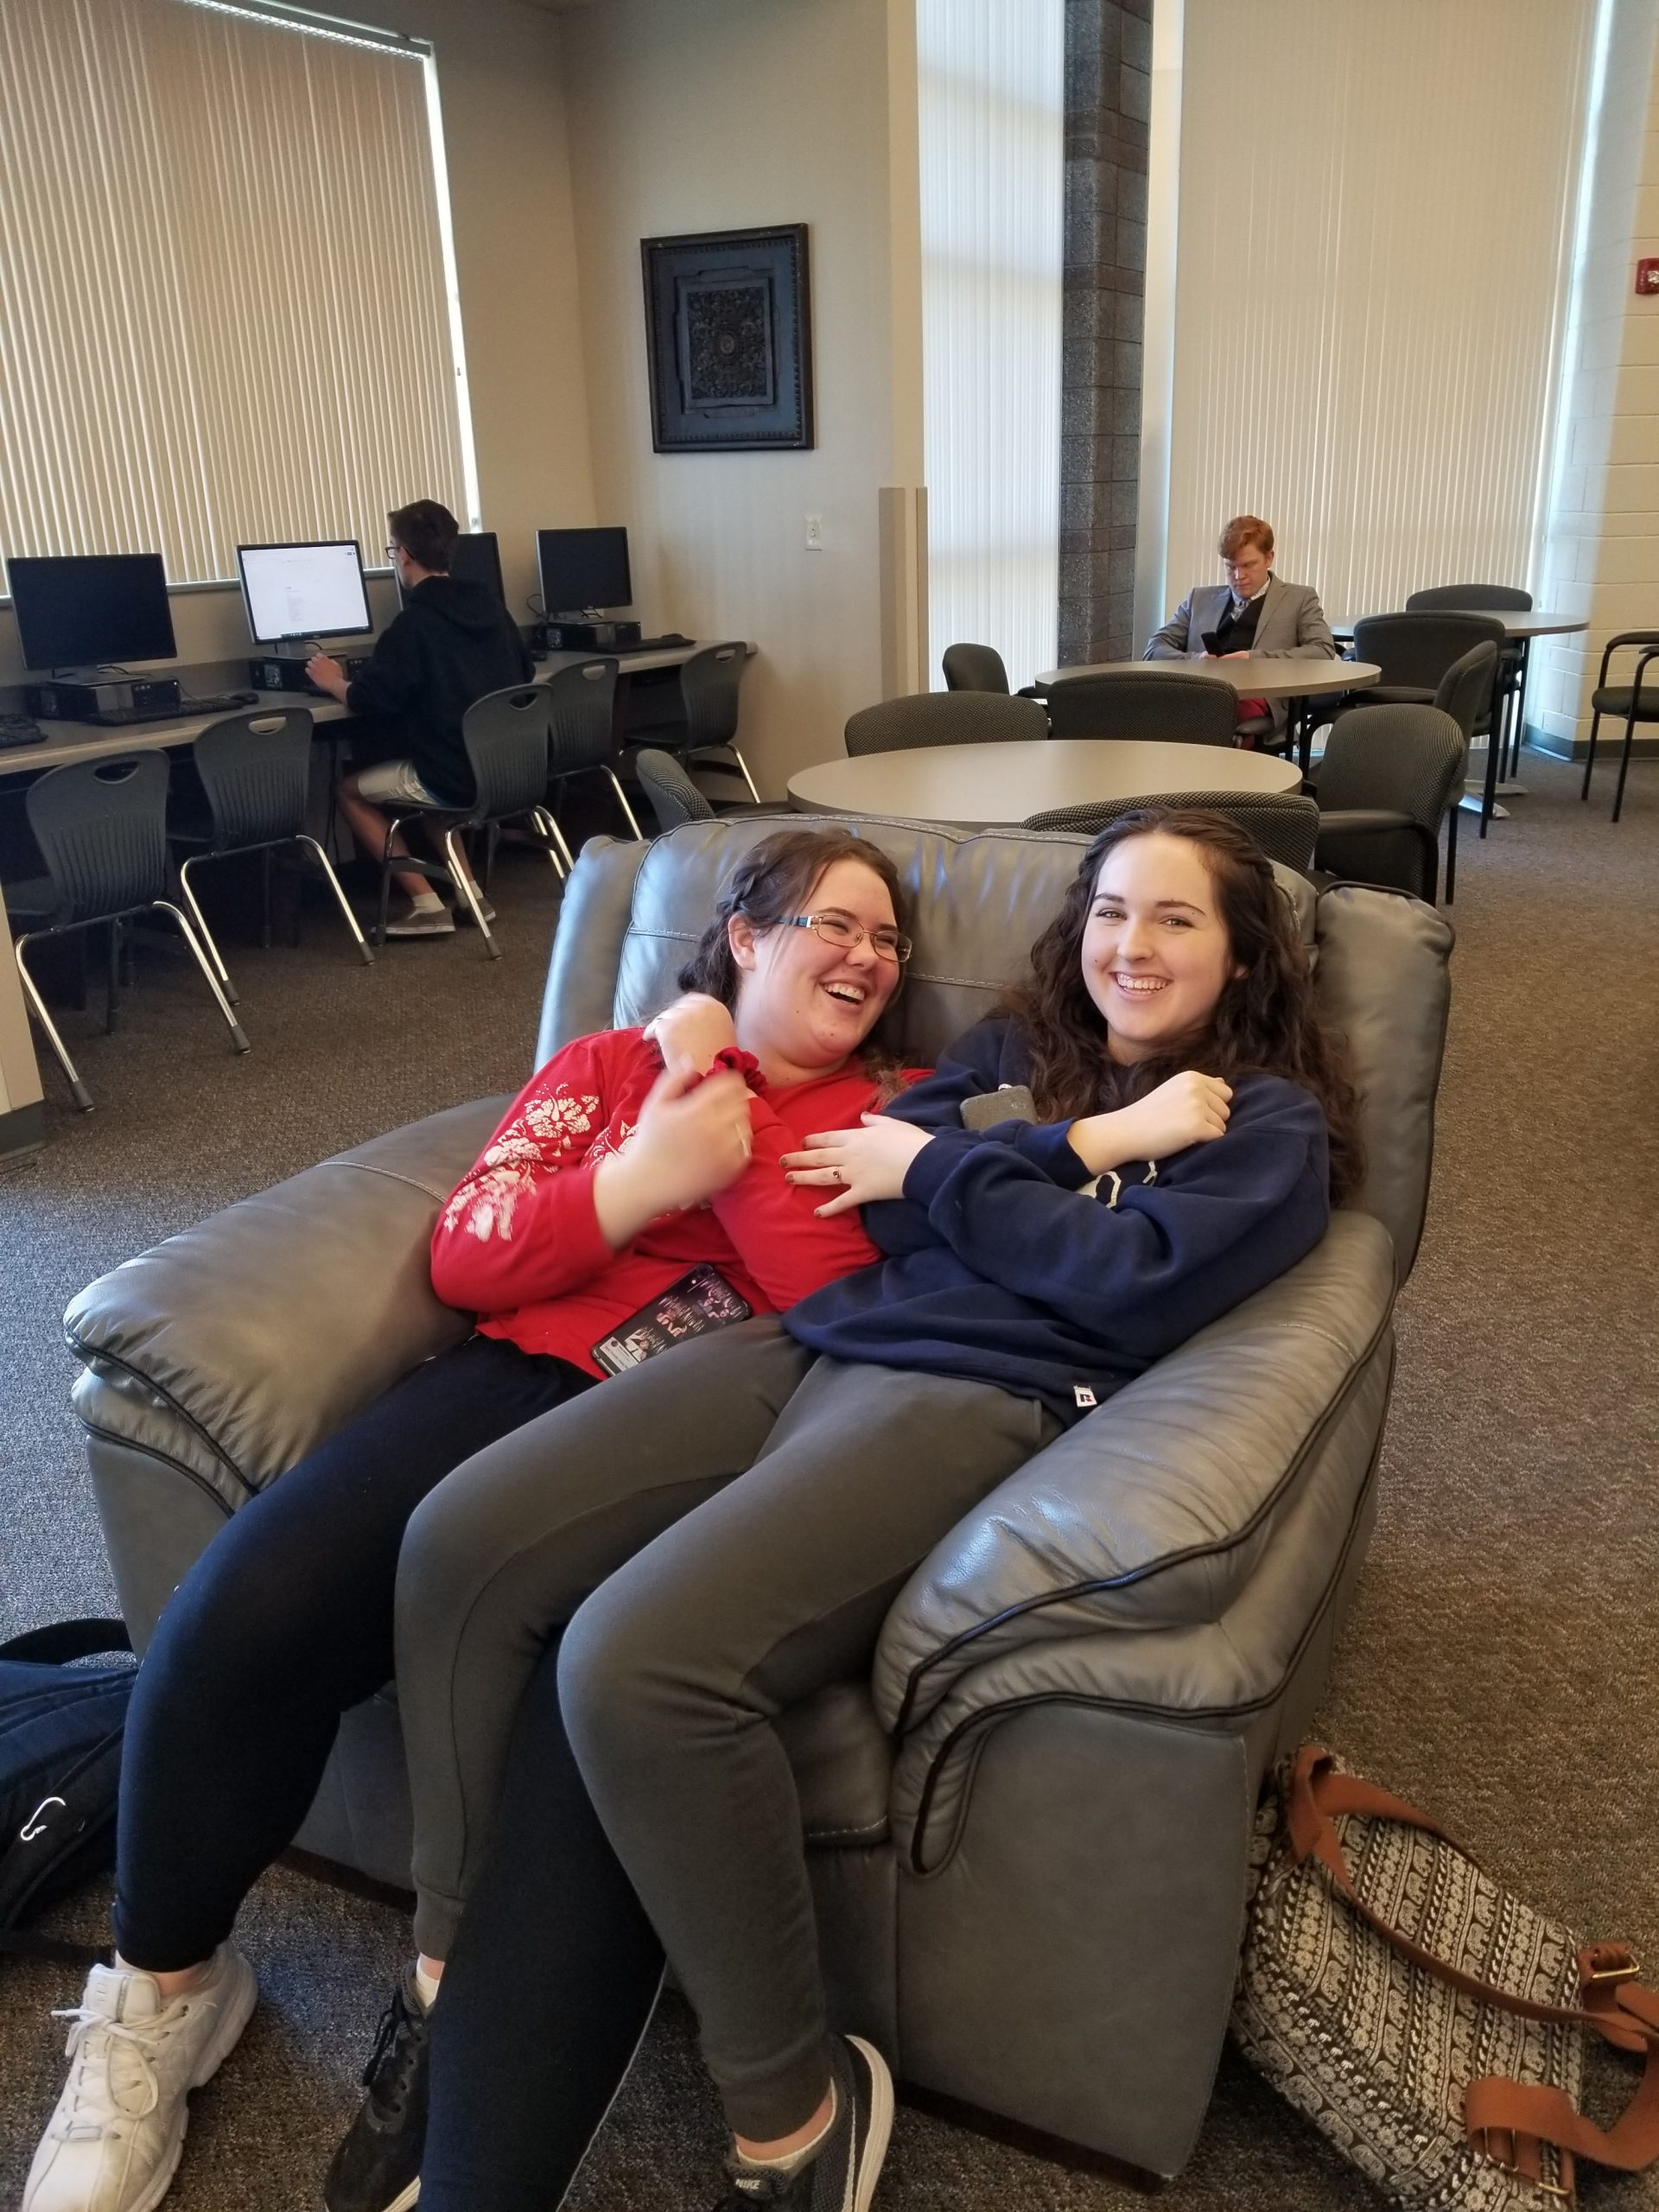 Students Hanging Out In Library